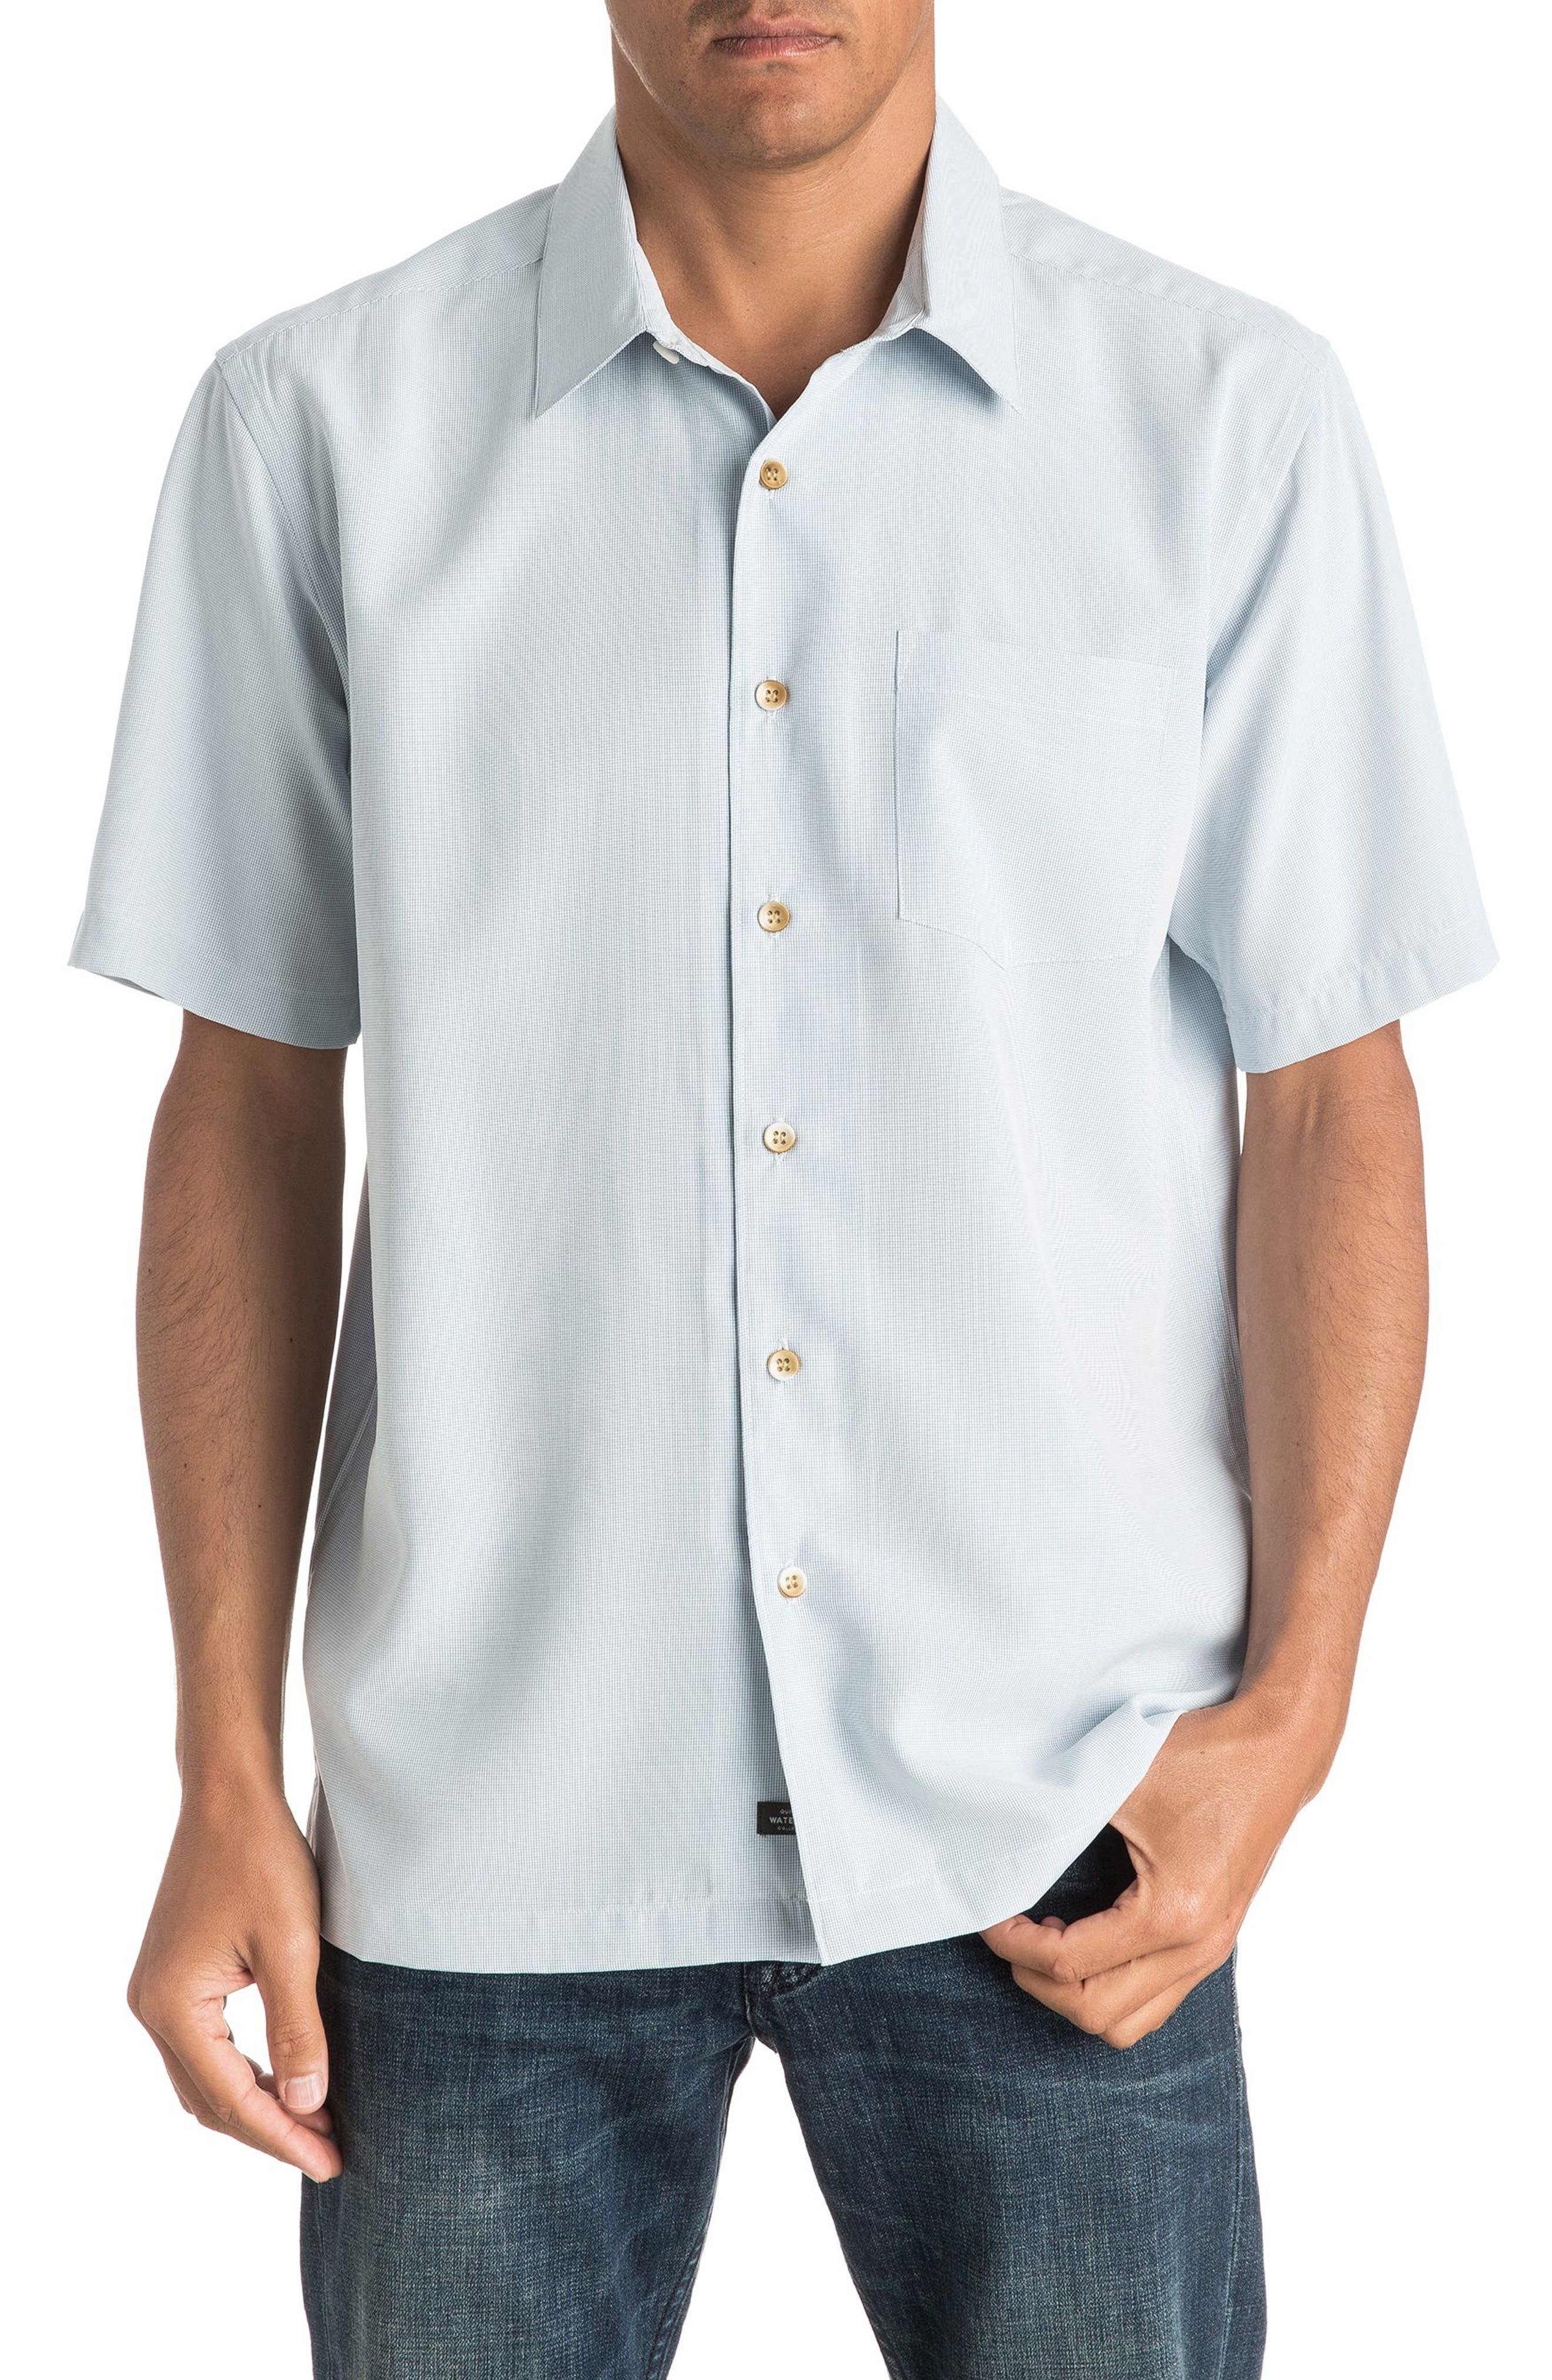 Alternate Image 1 Selected - Quiksilver Waterman Collection 'Cane Island' Regular Fit Short Sleeve Sport Shirt